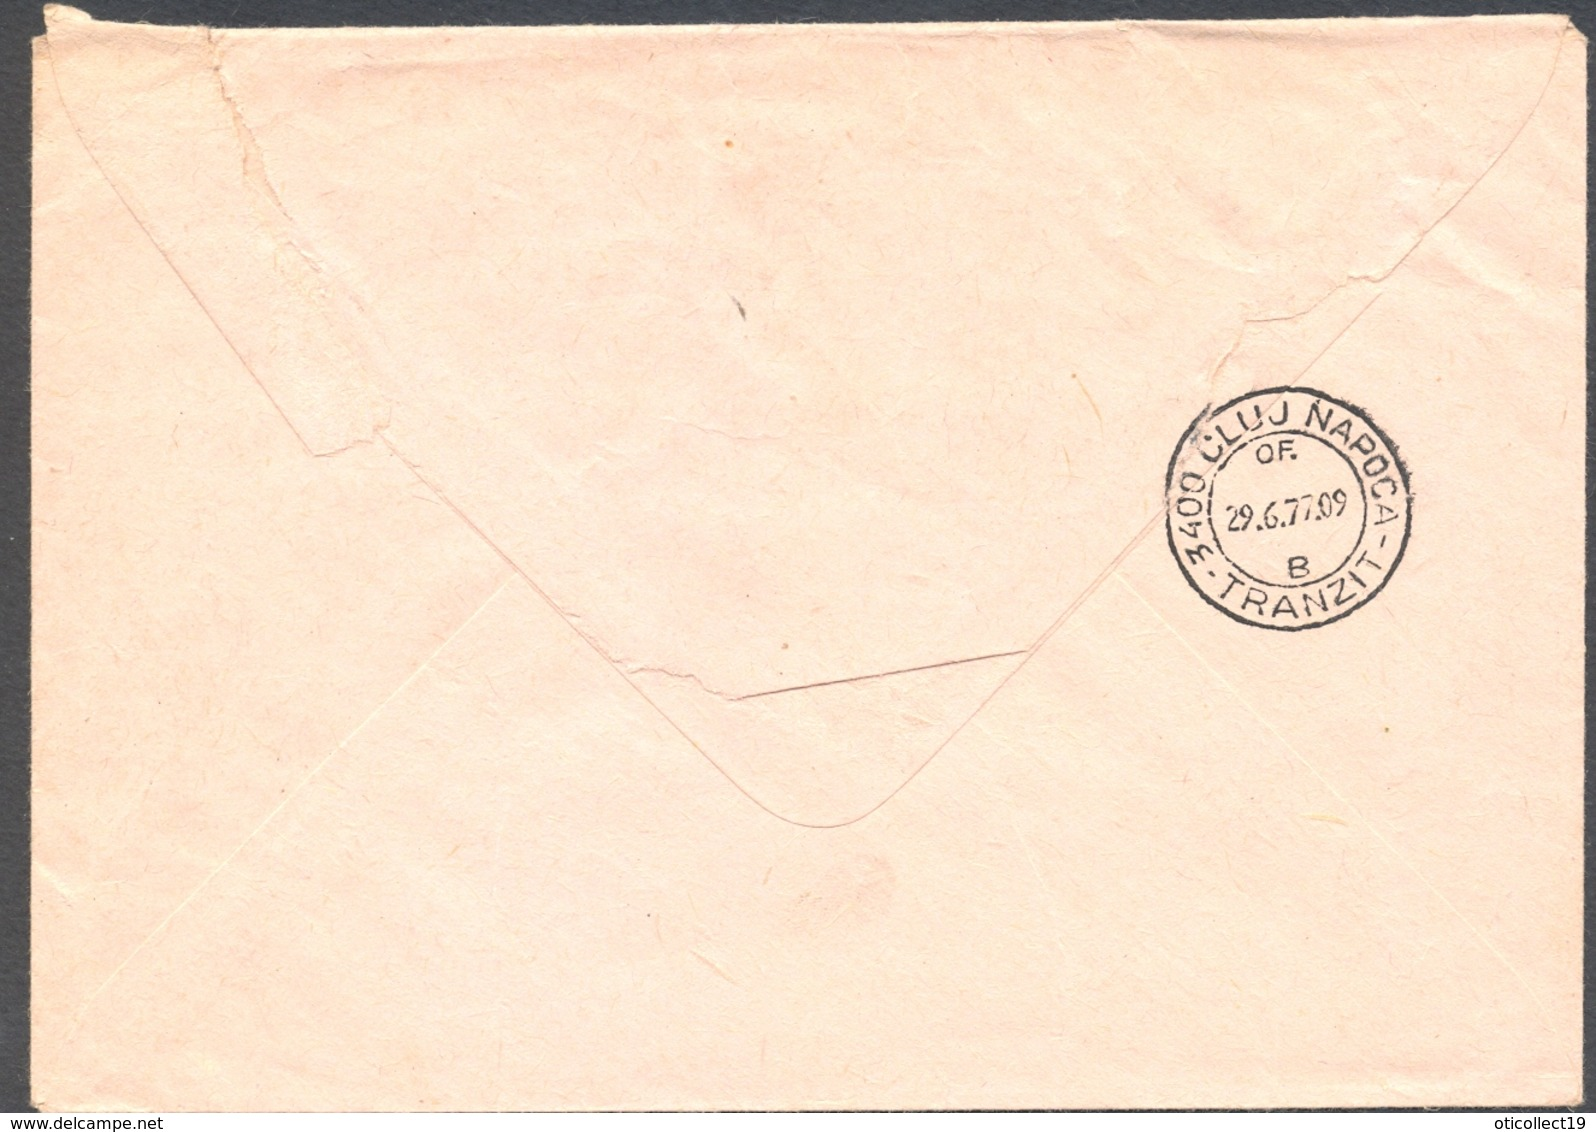 POSTAL SERVICES, TOKAJ TOWN, STAMPS ON REGISTERED COVER STATIONERY, 1977, HUNGARY - Postal Stationery